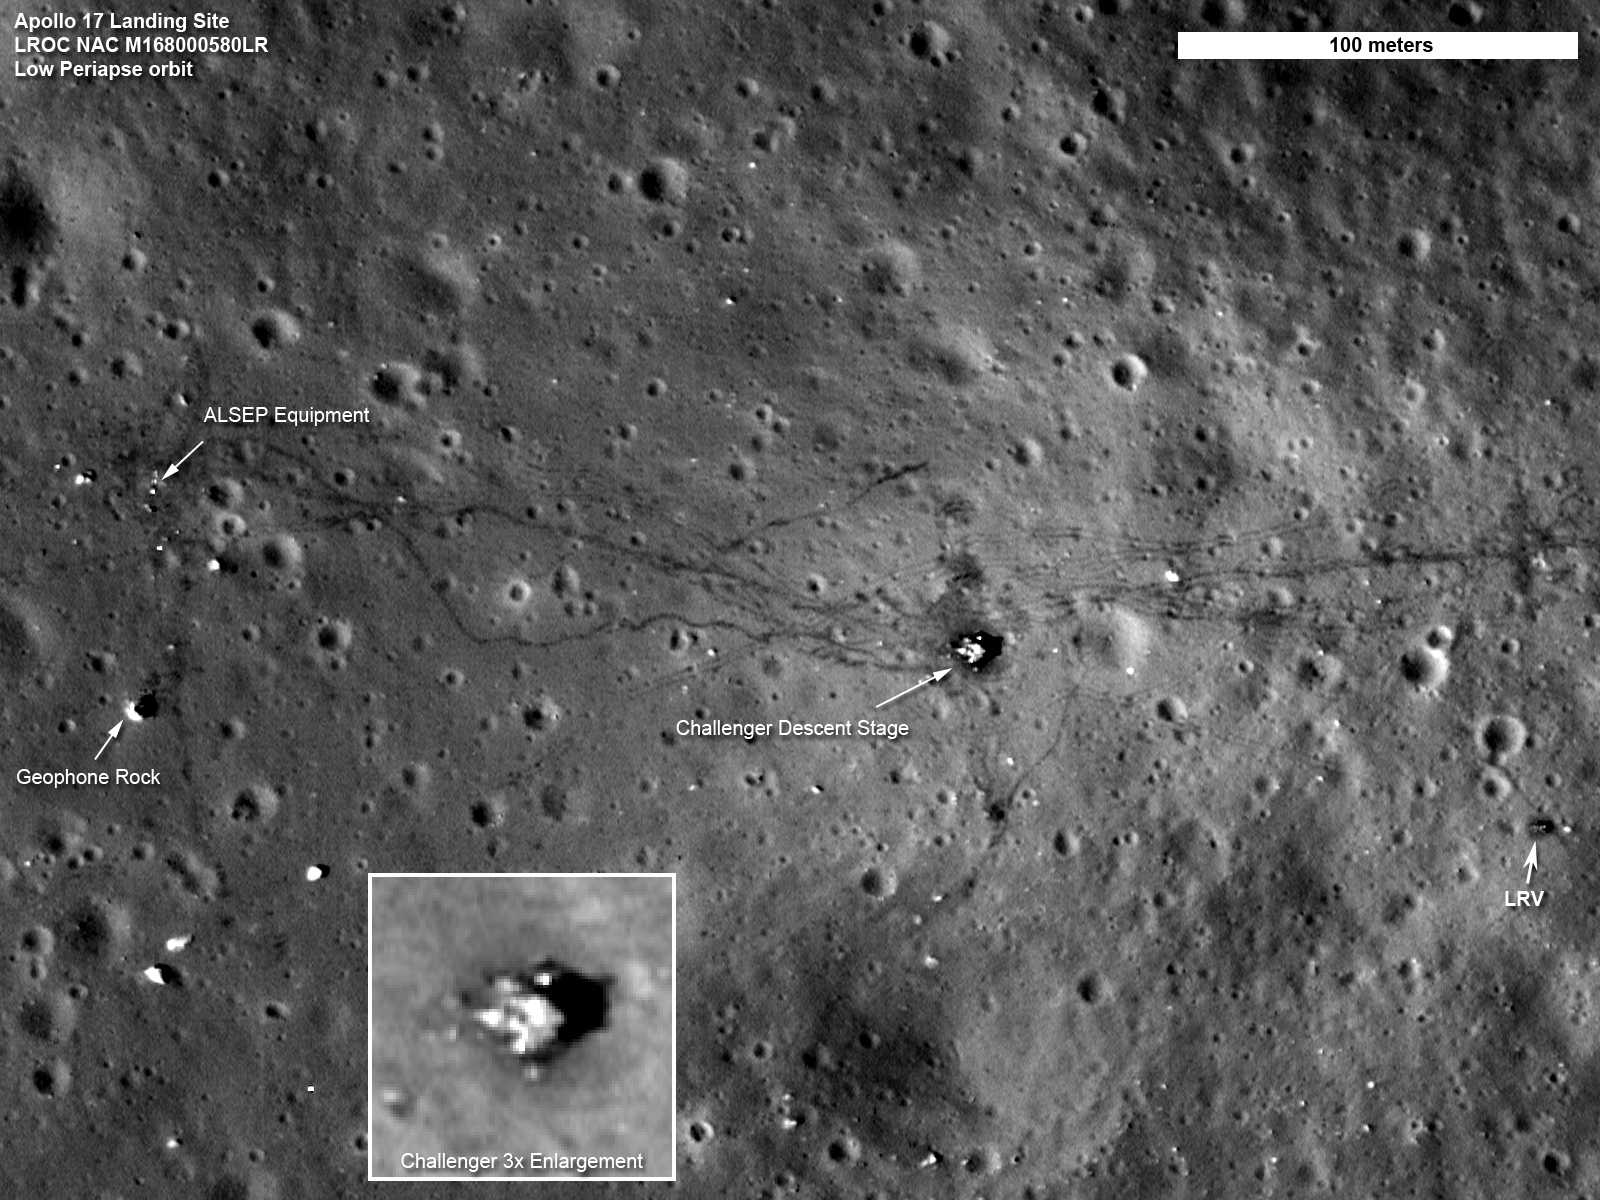 apollo 17 on the moon from LRO